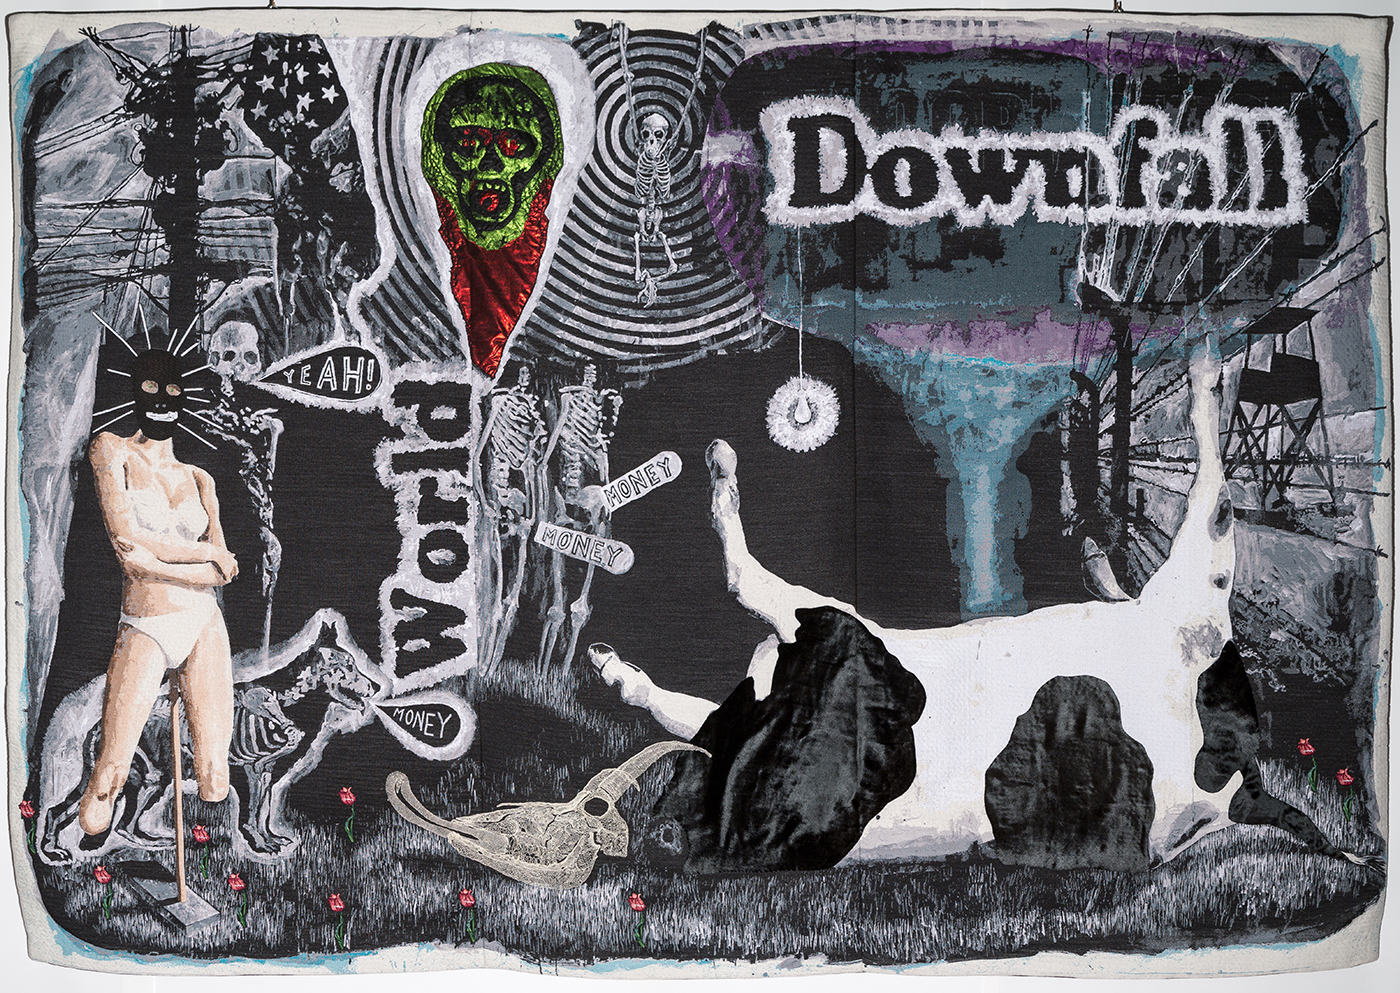 Damien Deroubaix - World Downfall, 2014